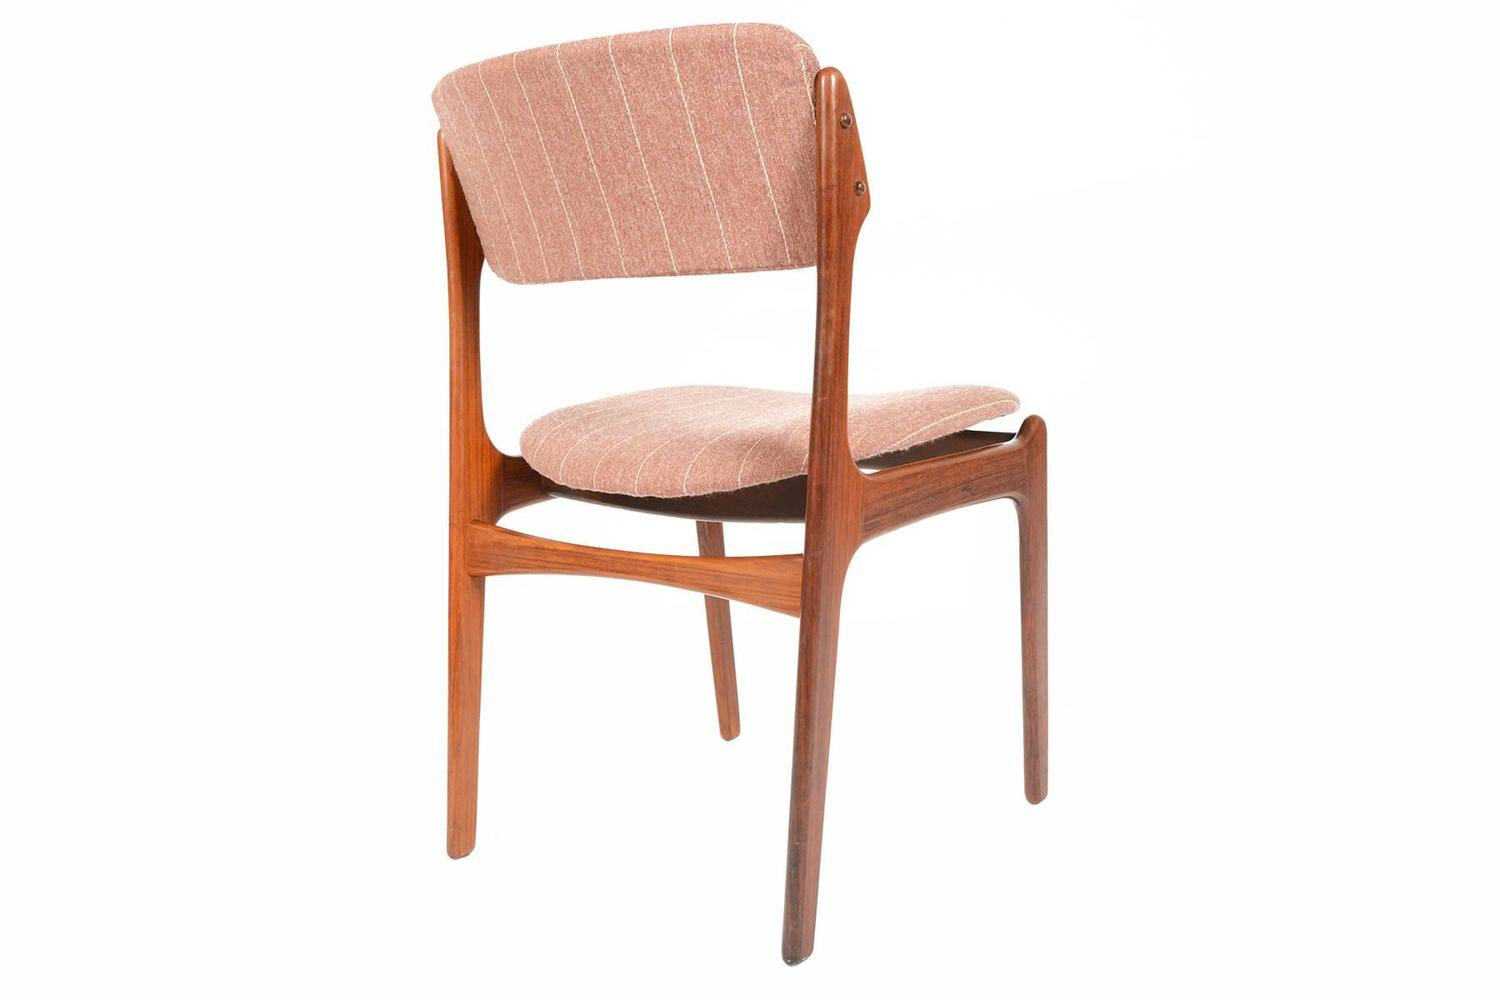 erik buck chairs jysk.ca chair covers set of six model 49 dining in rosewood